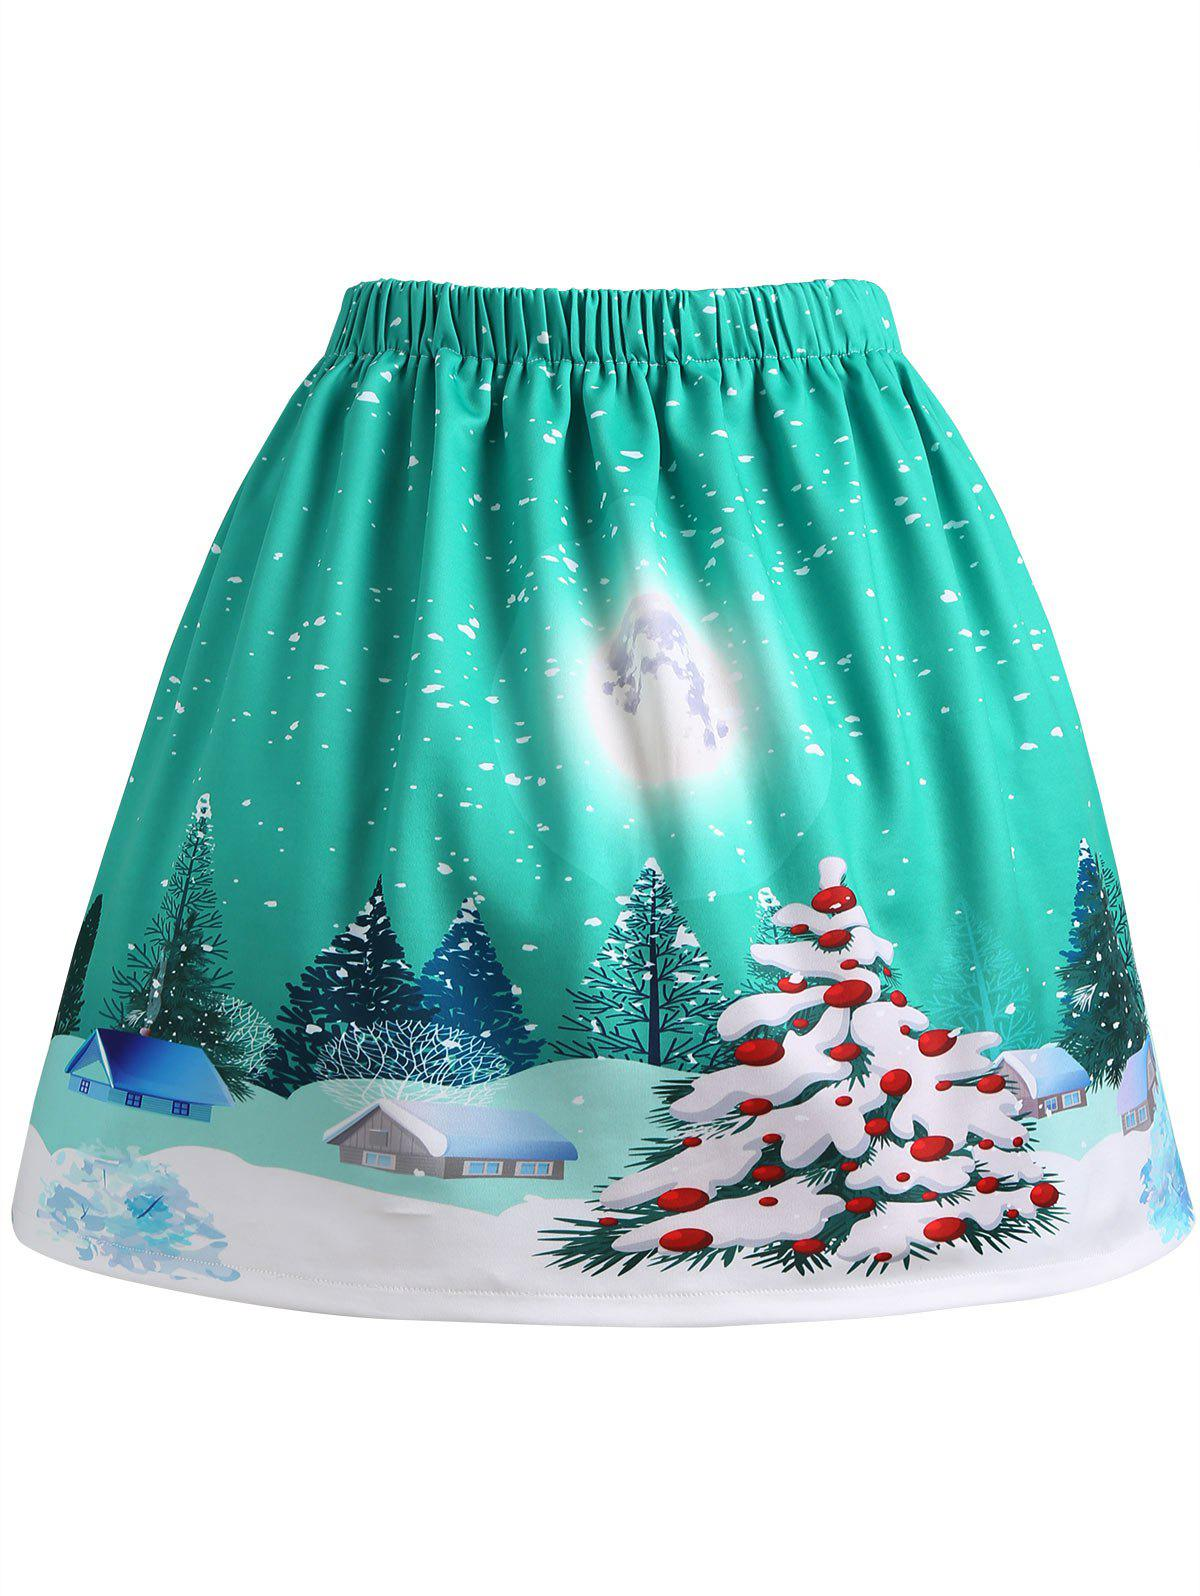 Outfit Christmas Tree Moon House Print Plus Size Skirt